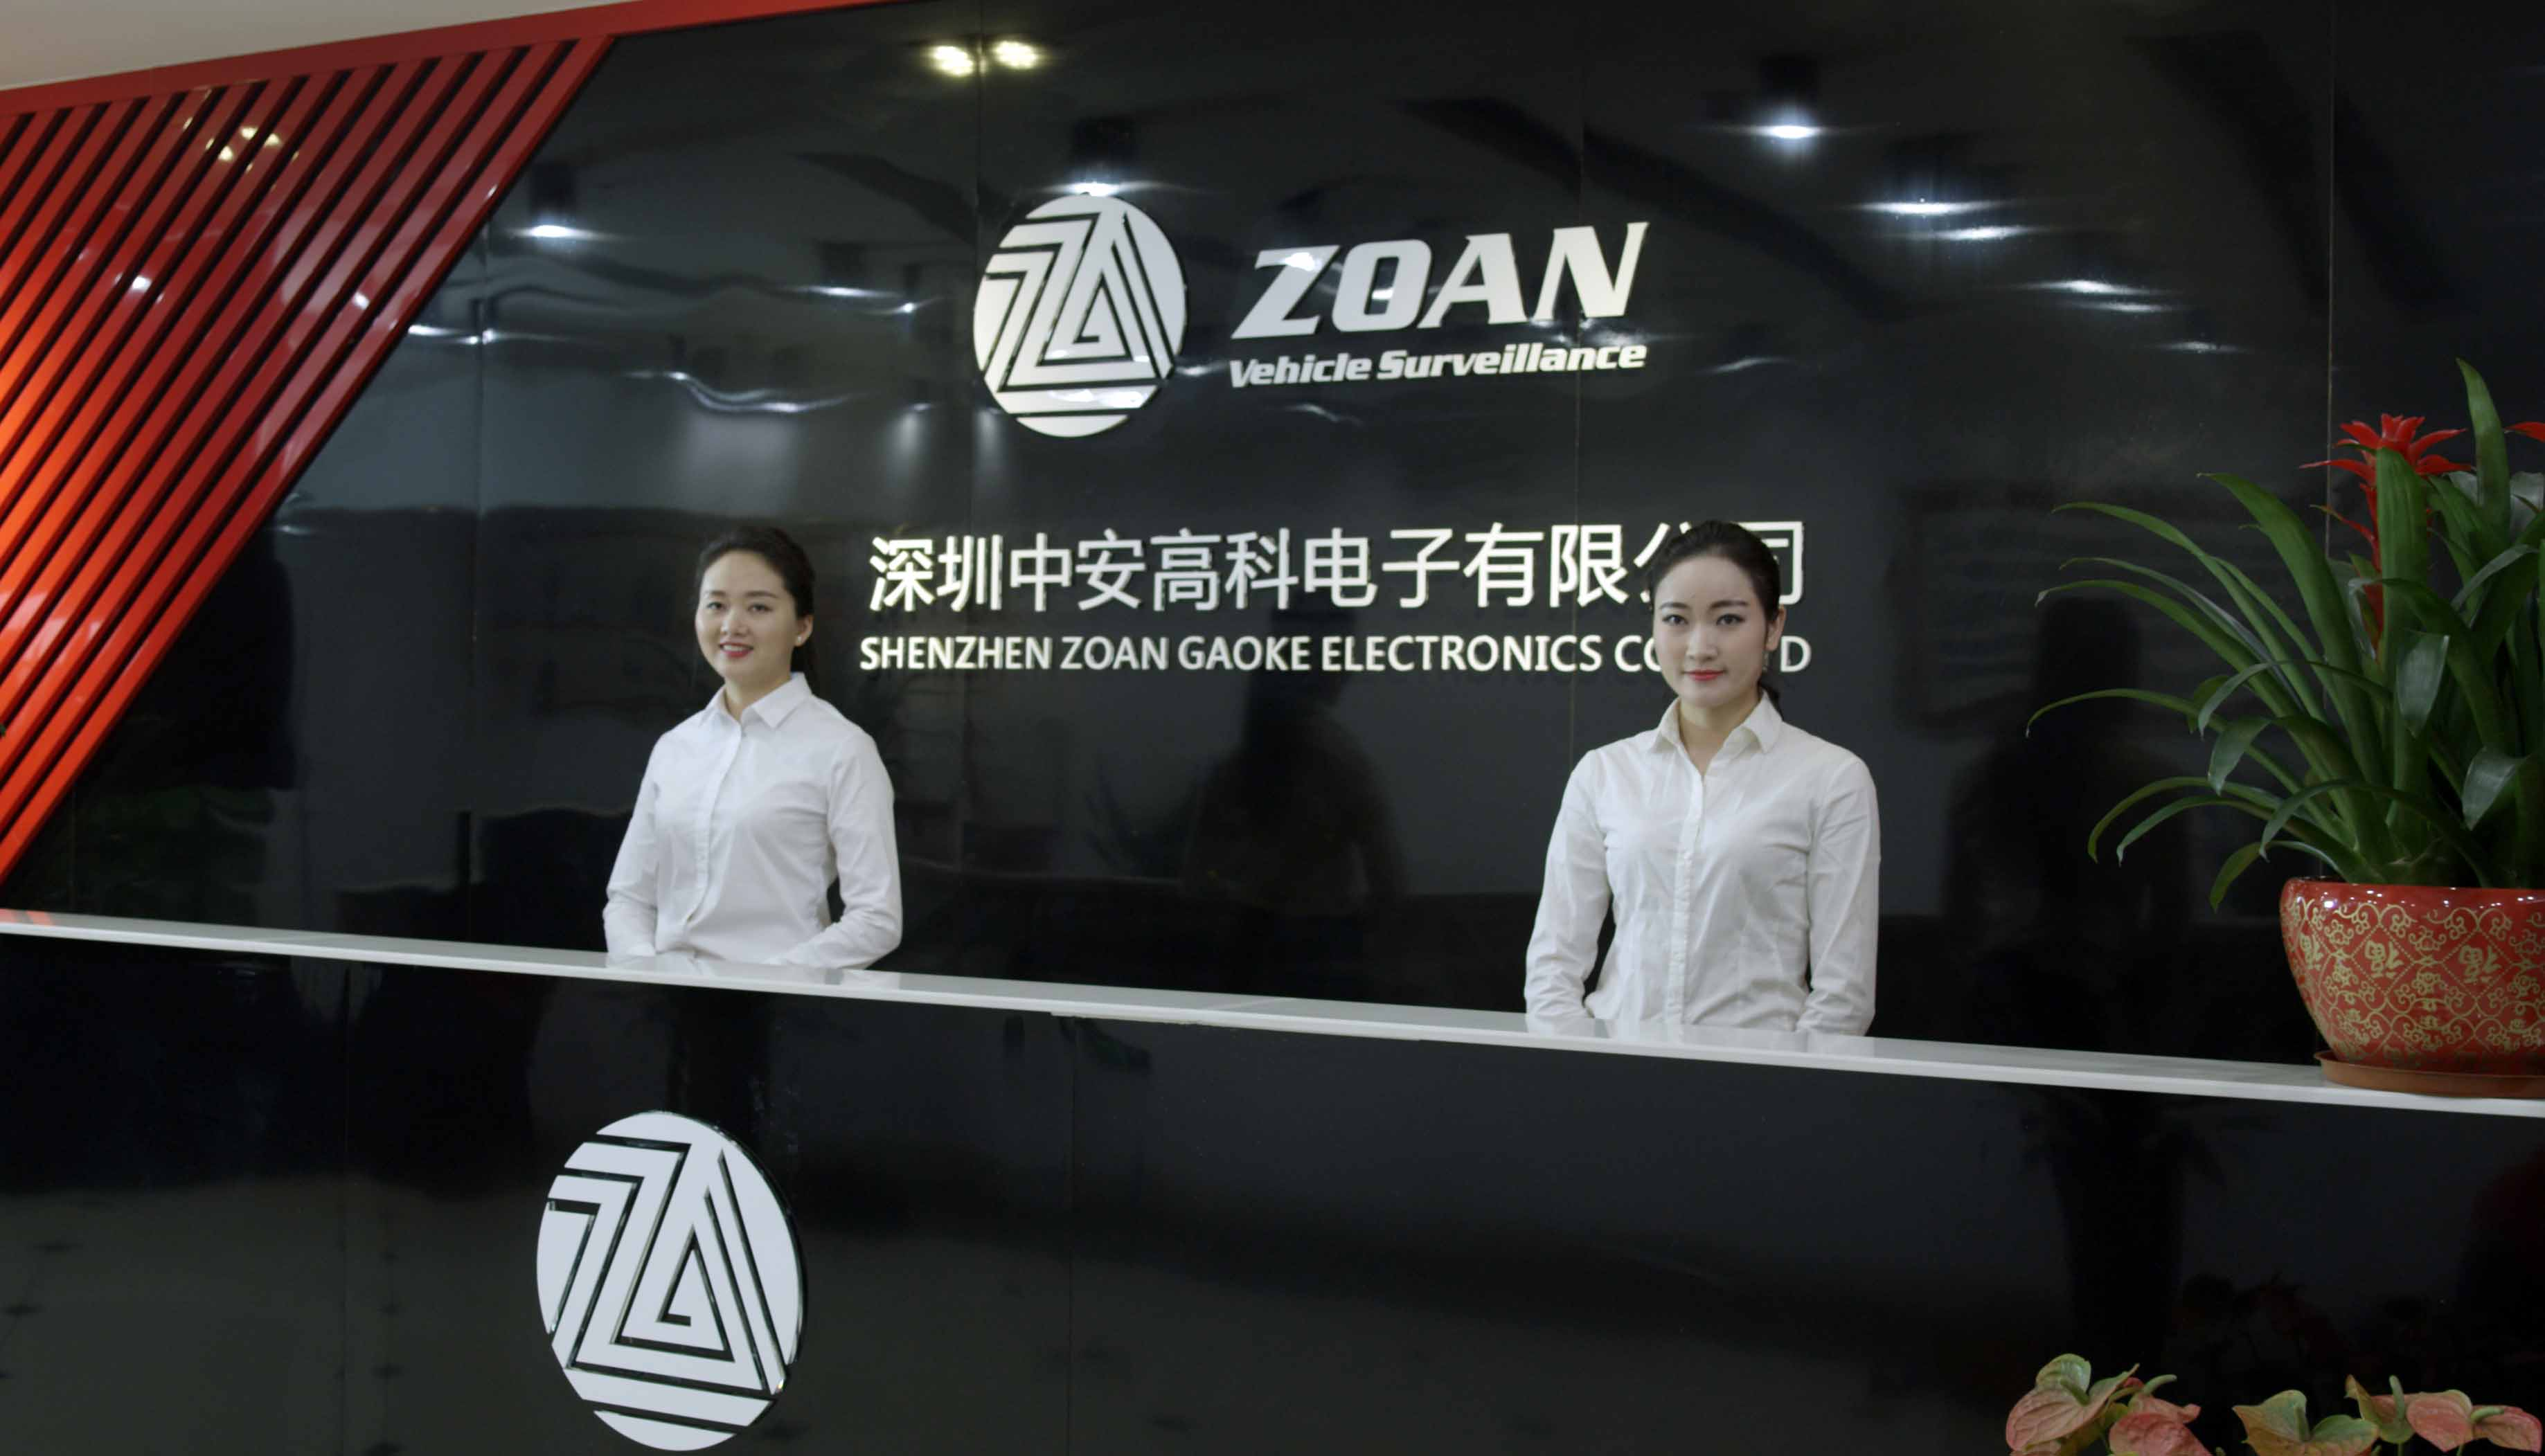 Shenzhen Zhongangaoke Electronic Co., Ltd.